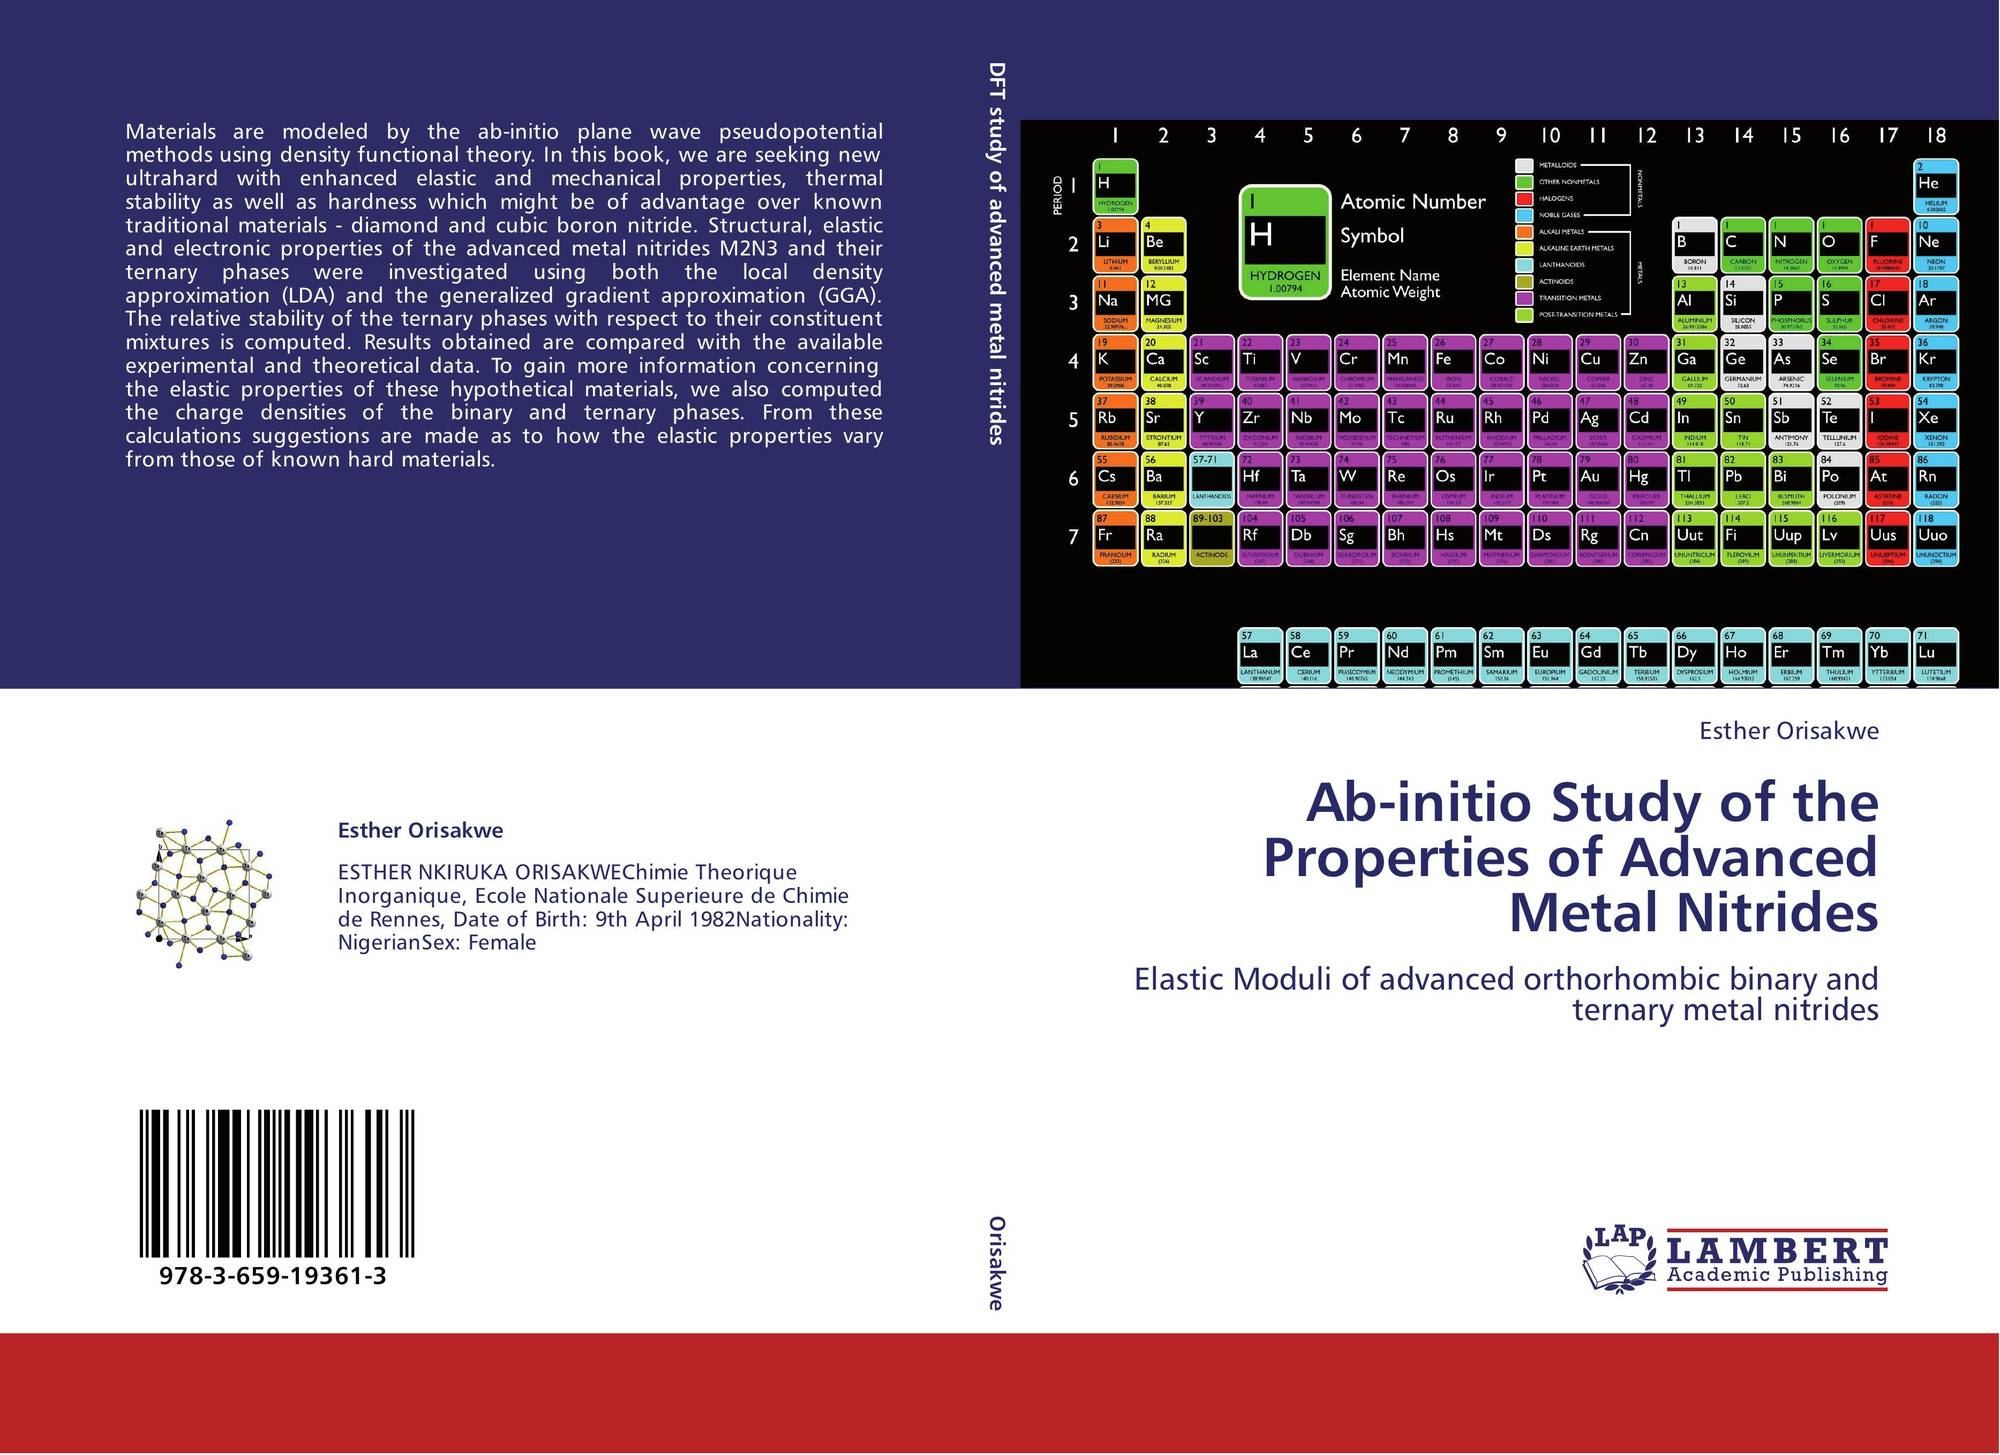 Bookcover of Ab-initio Study of the Properties of Advanced Metal Nitrides.  Omni badge 9307e2201e5f762643a64561af3456be64a87707602f96b92ef18a9bbcada116